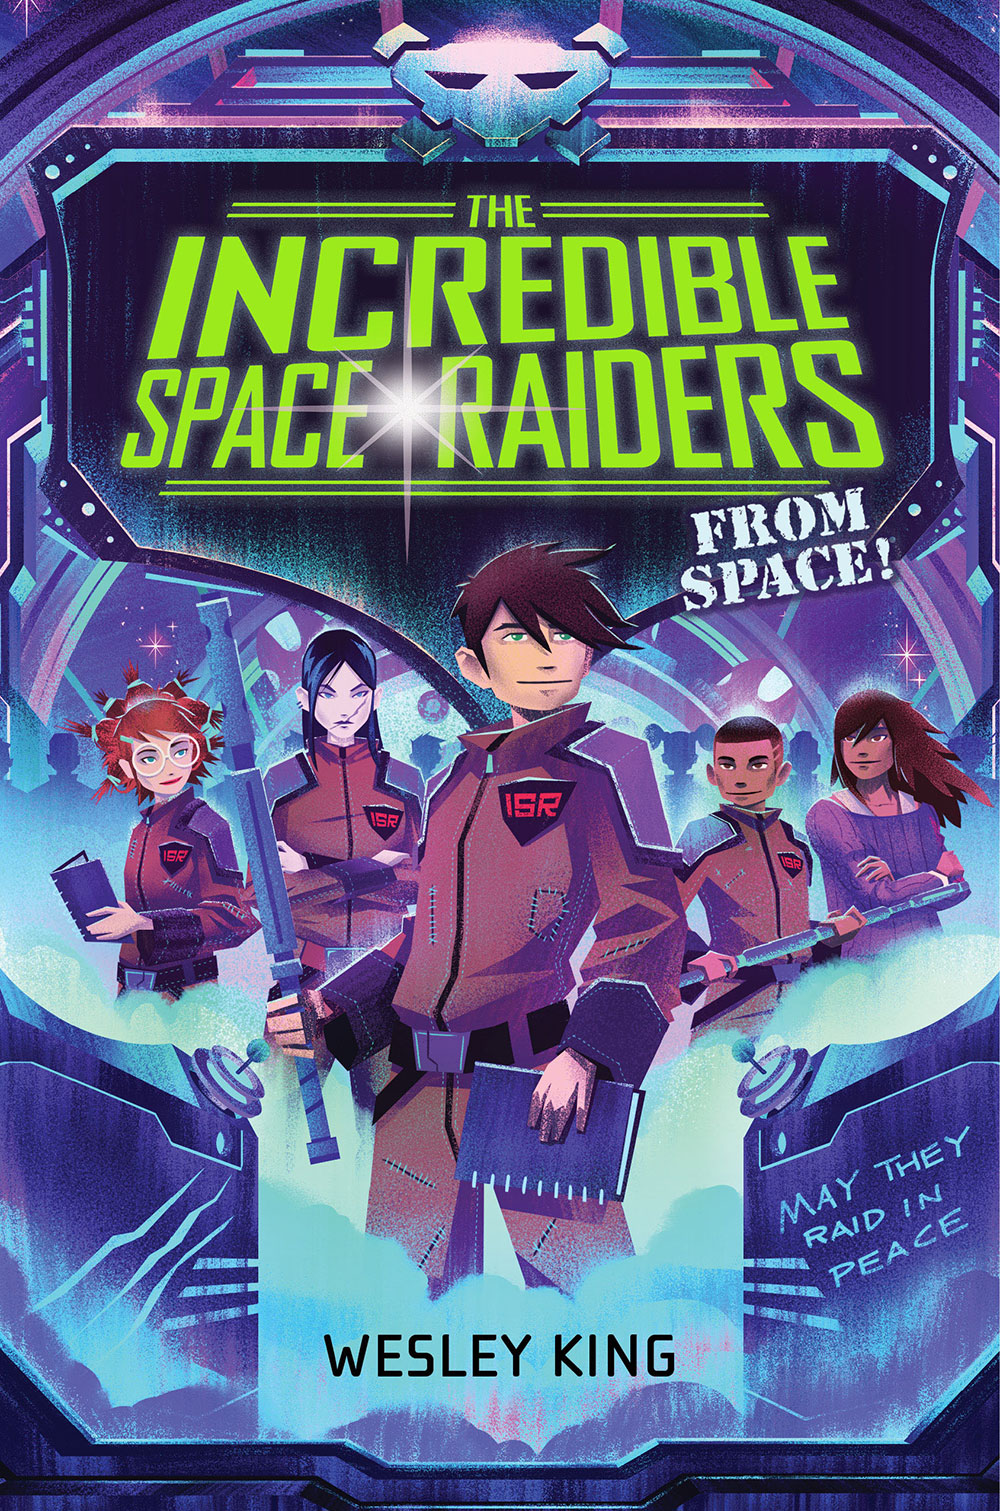 2014 · The Incredible Space Raiders... From Space!